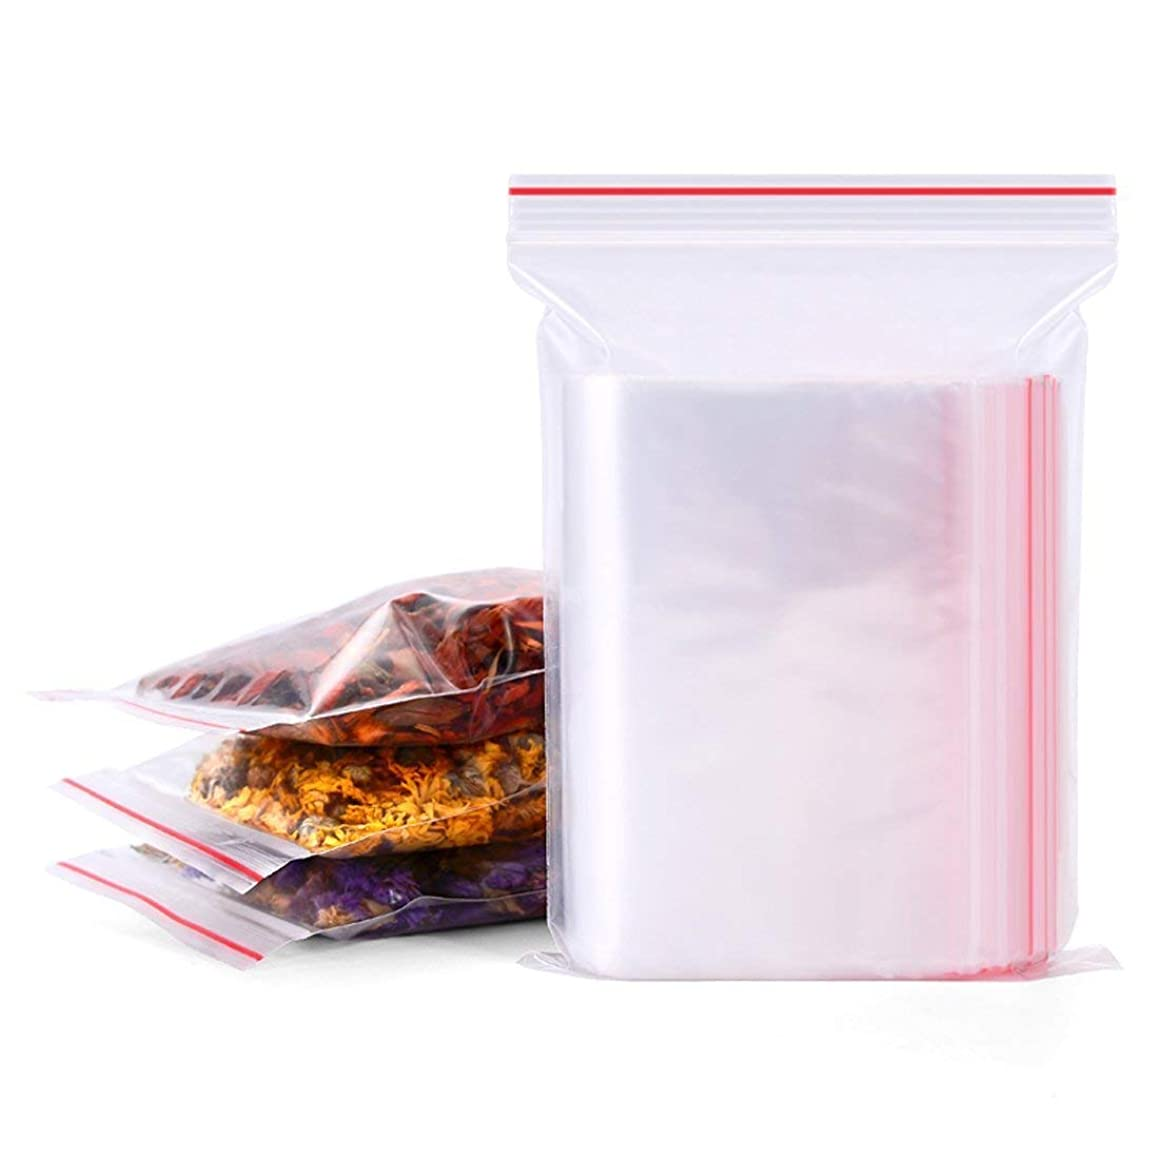 100 PCS 4x6 Inch Clear Reusable Plastic Seal Bags Cello Cellophane Packages Red Small Zip Lock Block Storage Small Items Snacks Samples Jewelry Beads Gift Wrapping Bags